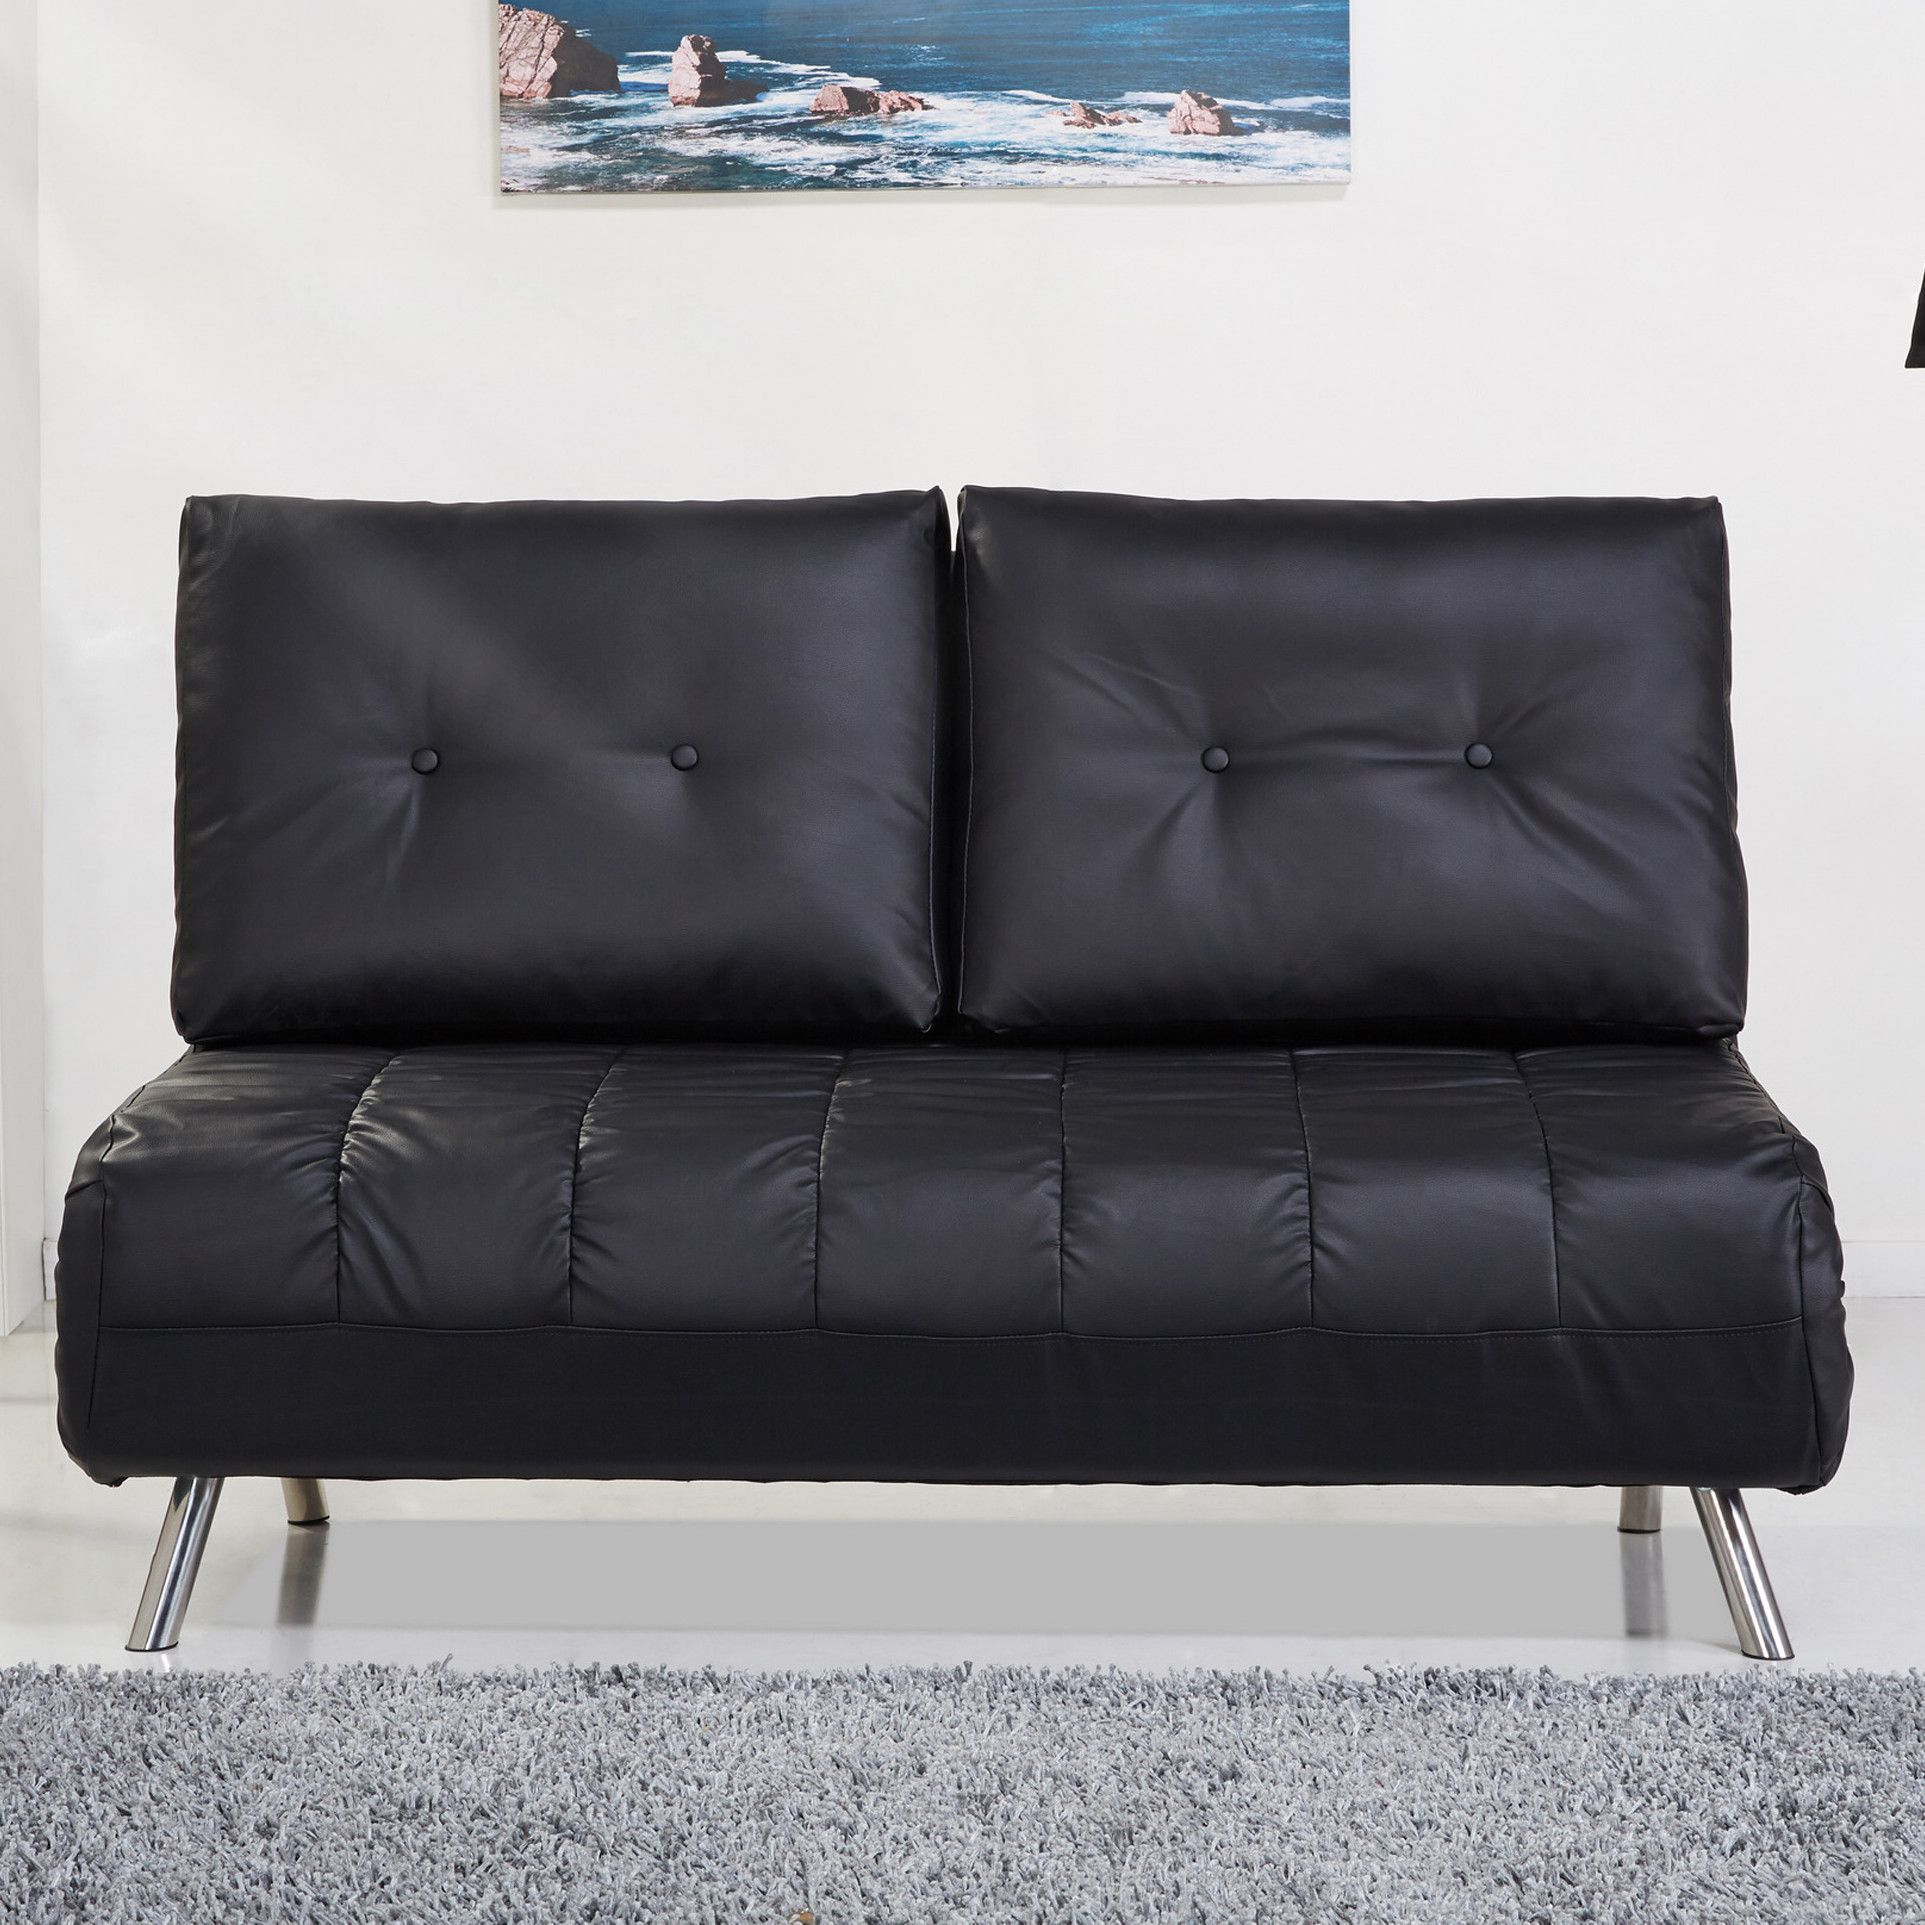 of great quick sofas loveseat for sofa convertible dona bed snooze amazing attachment that sleeper inspirational a ikea